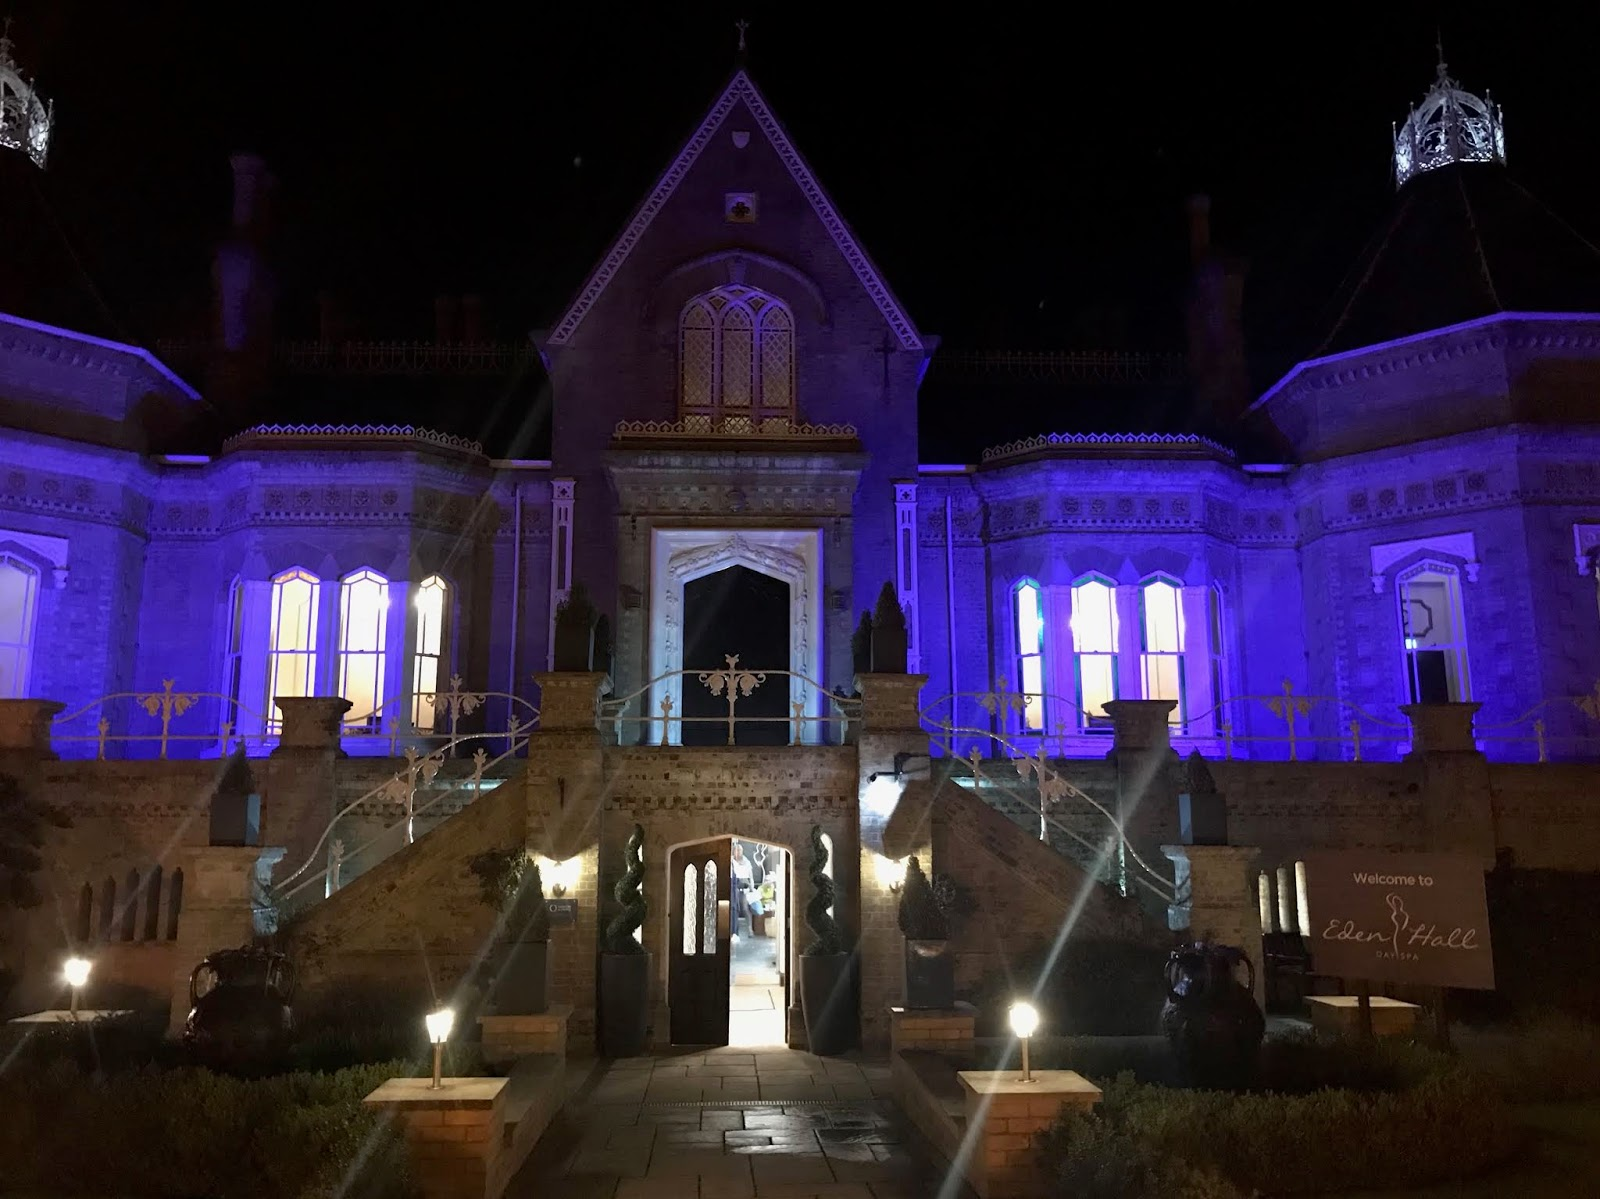 external view of Eden Hall spa at night